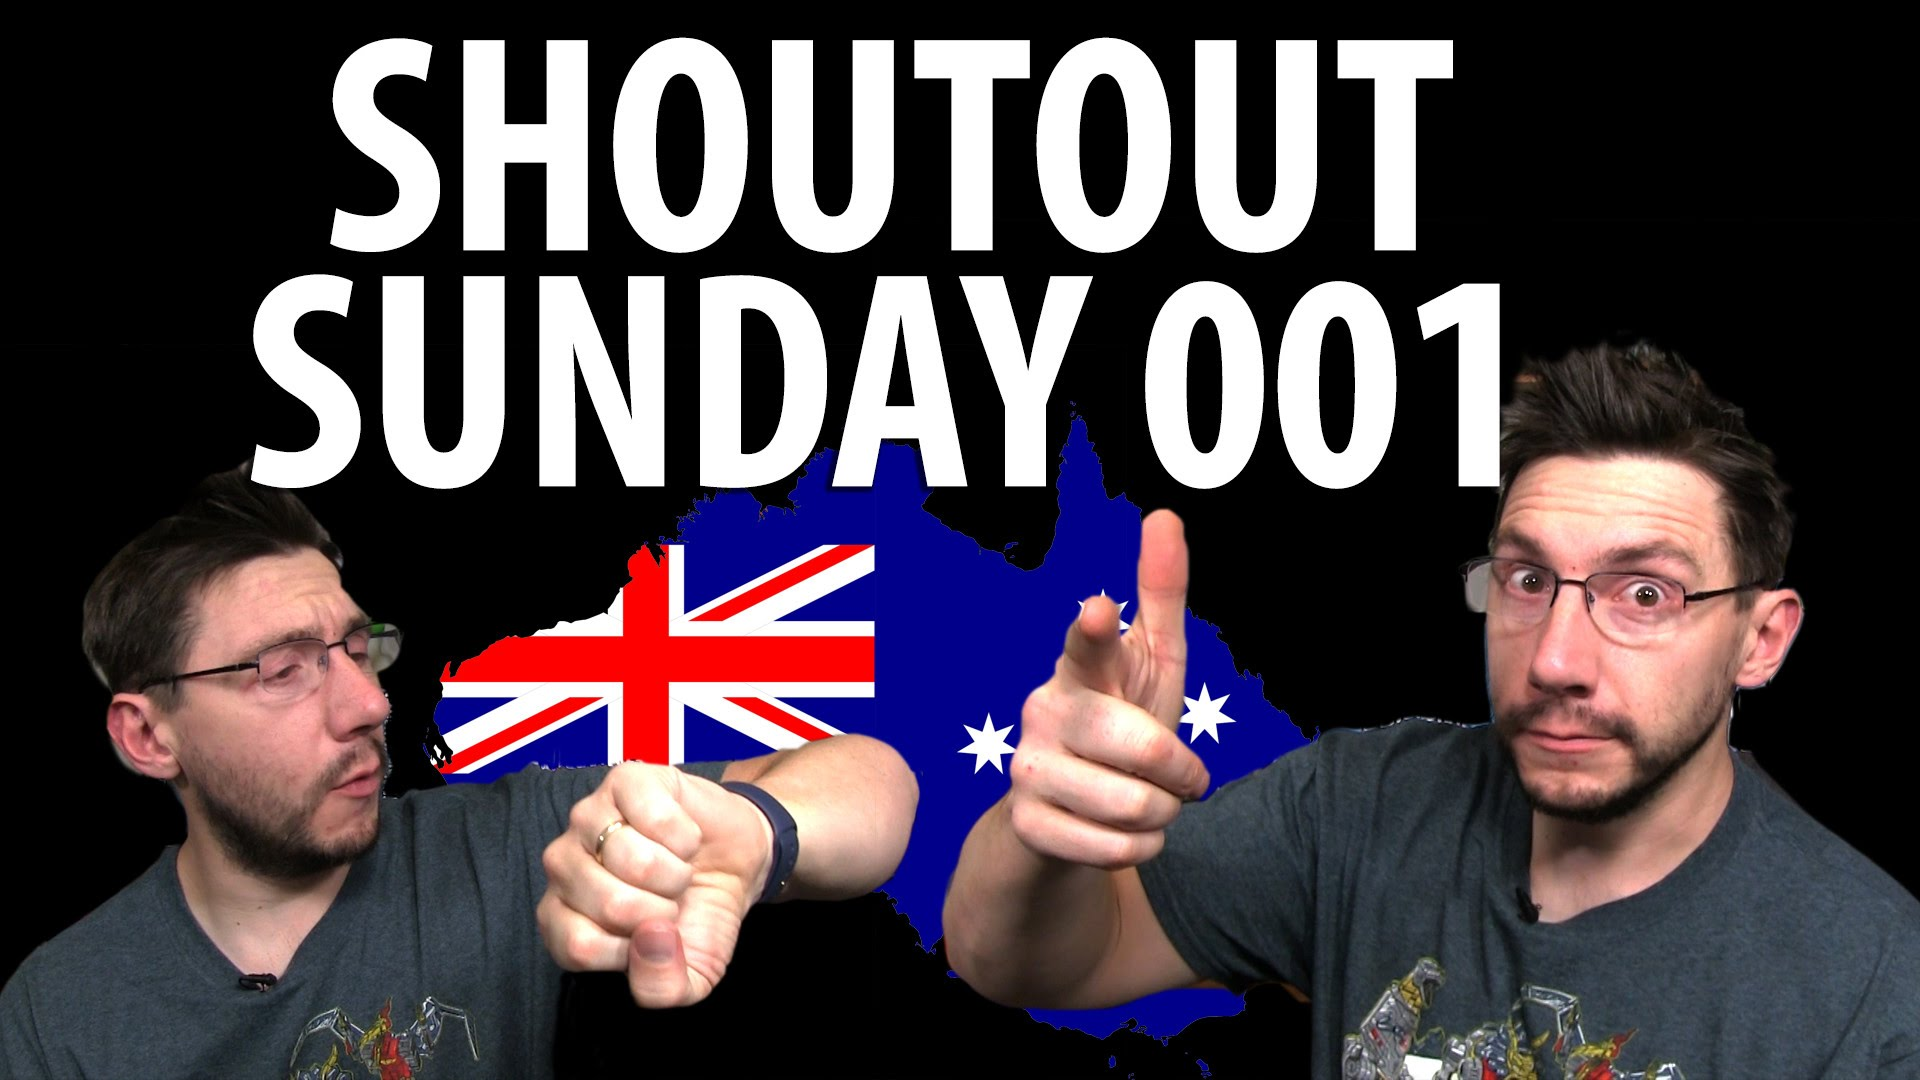 Shoutout Sunday 001 – Australia Edition